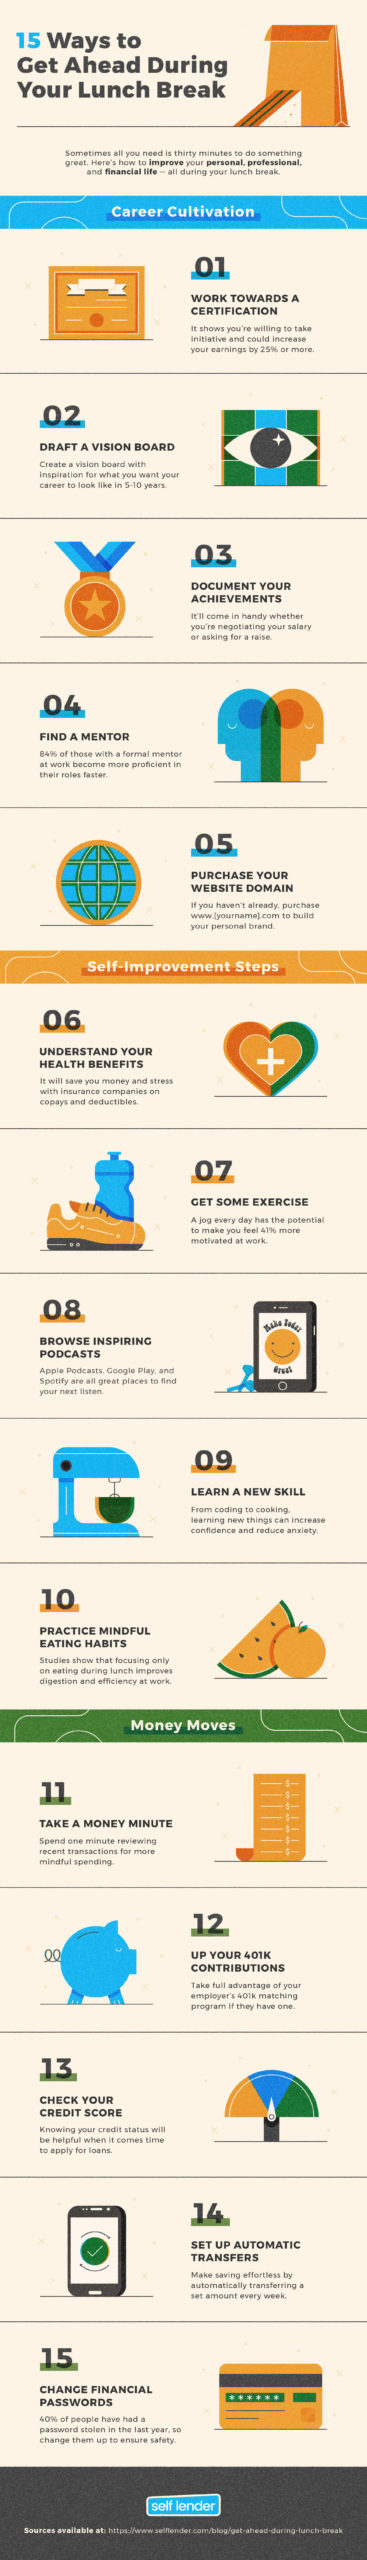 15 Ways to Make Better Use of Your Lunch Break [INFOGRAPHIC]